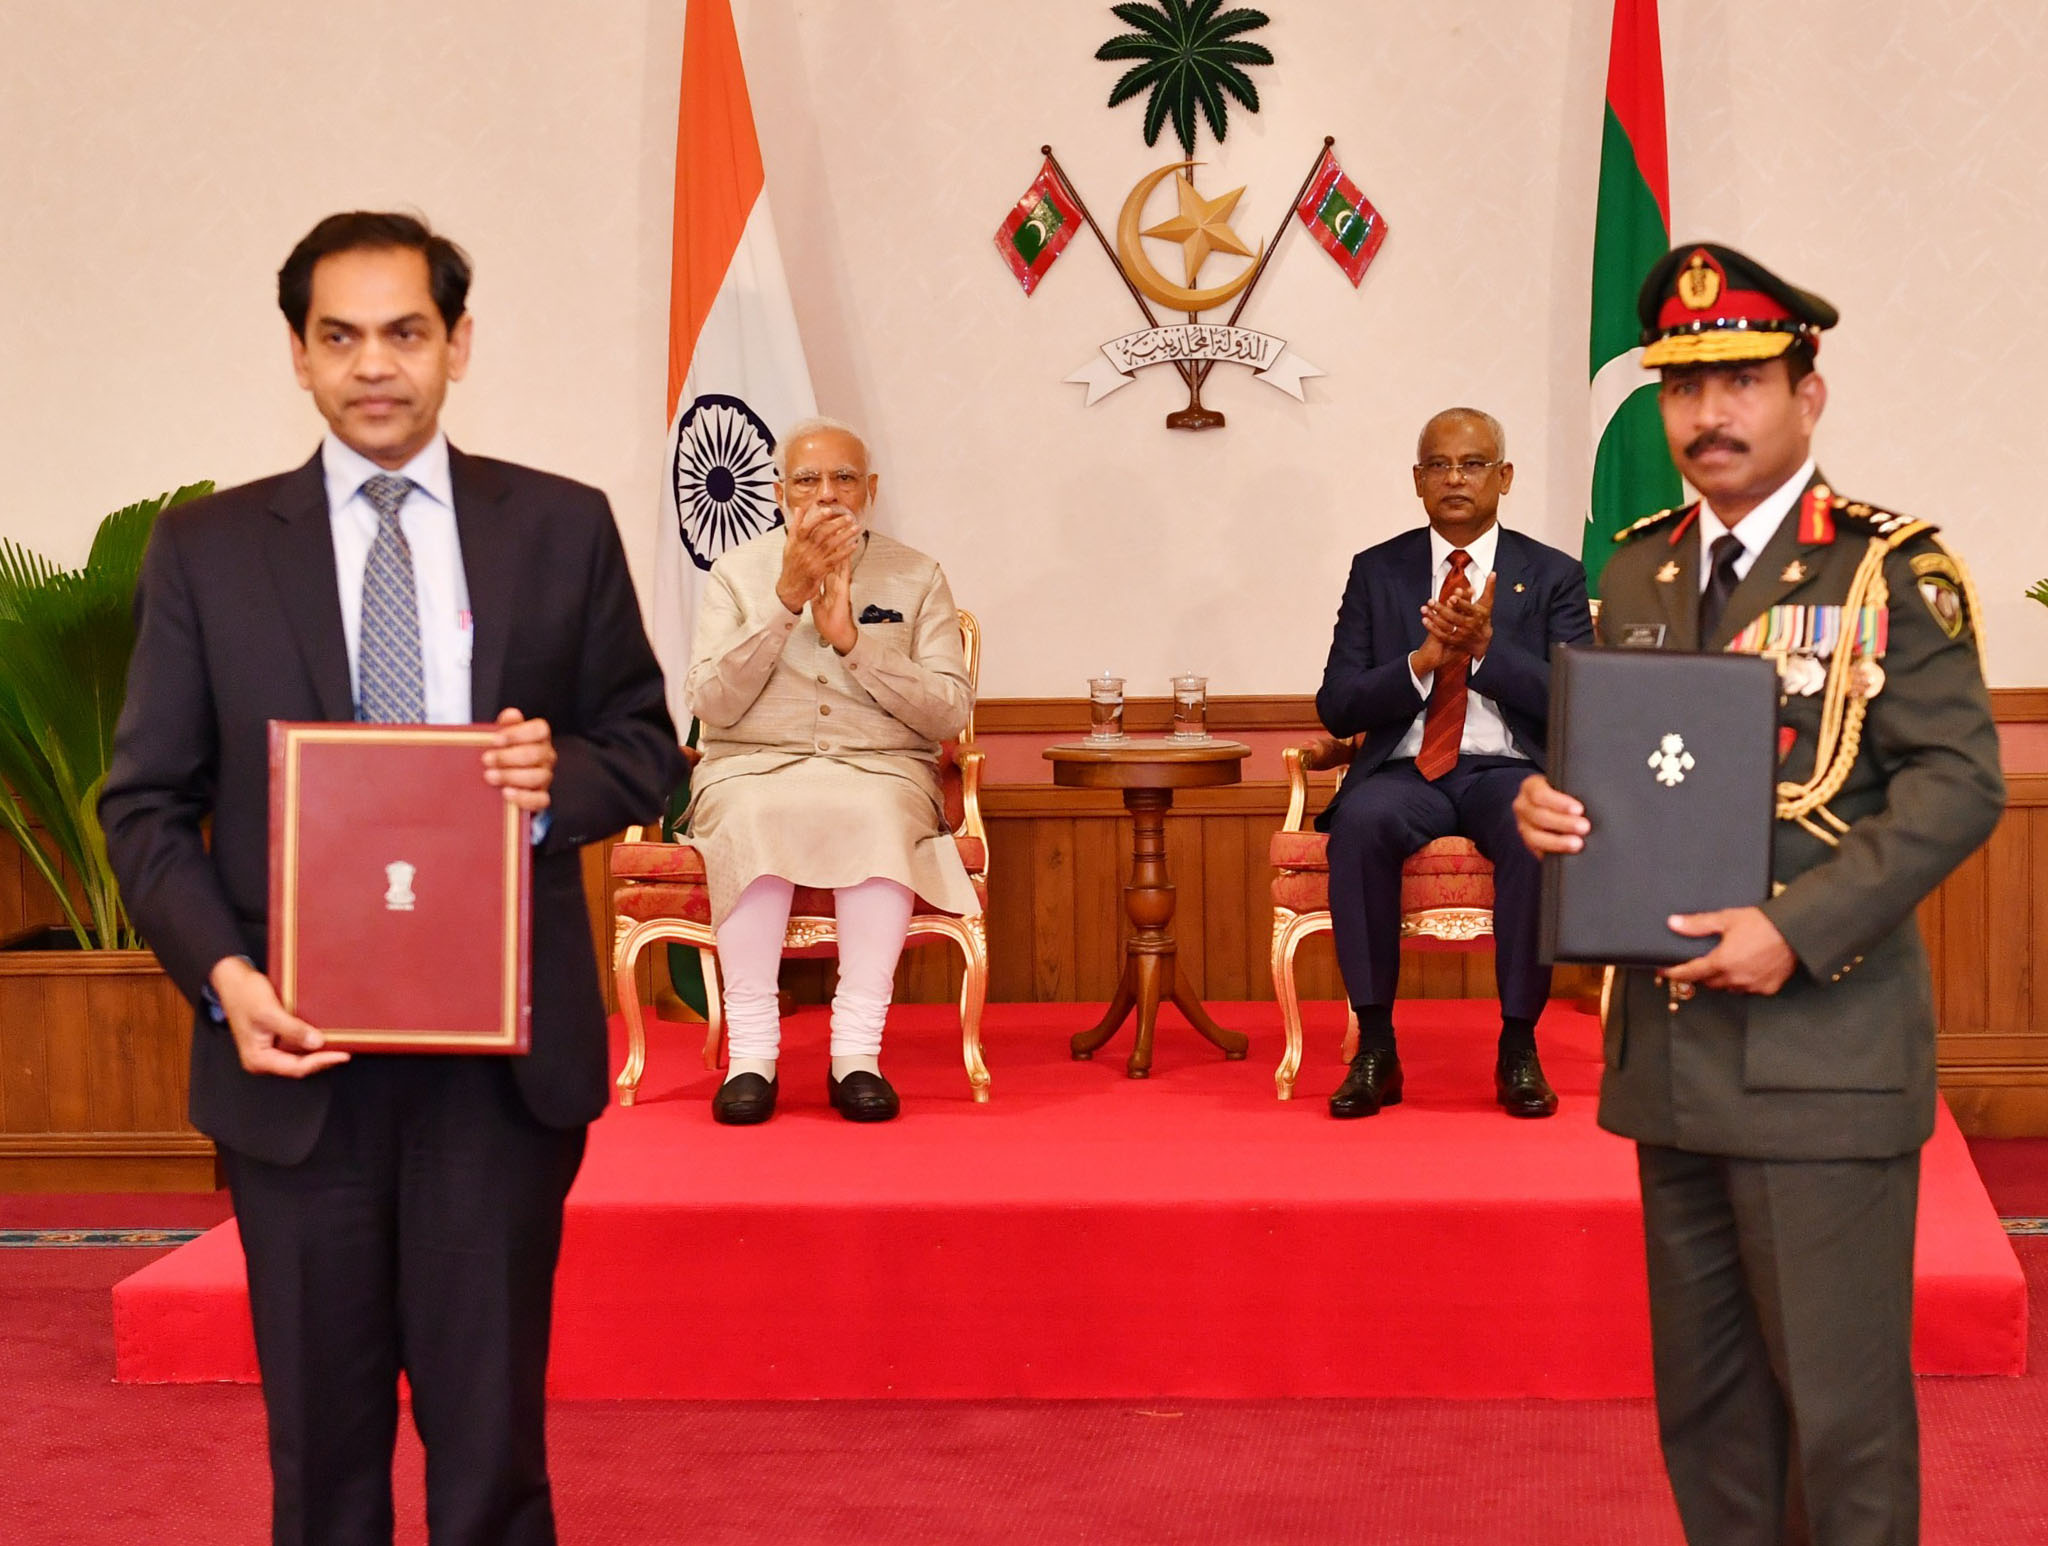 List of agreements signed during the state visit of Prime Minister Narendra Modi to Maldives